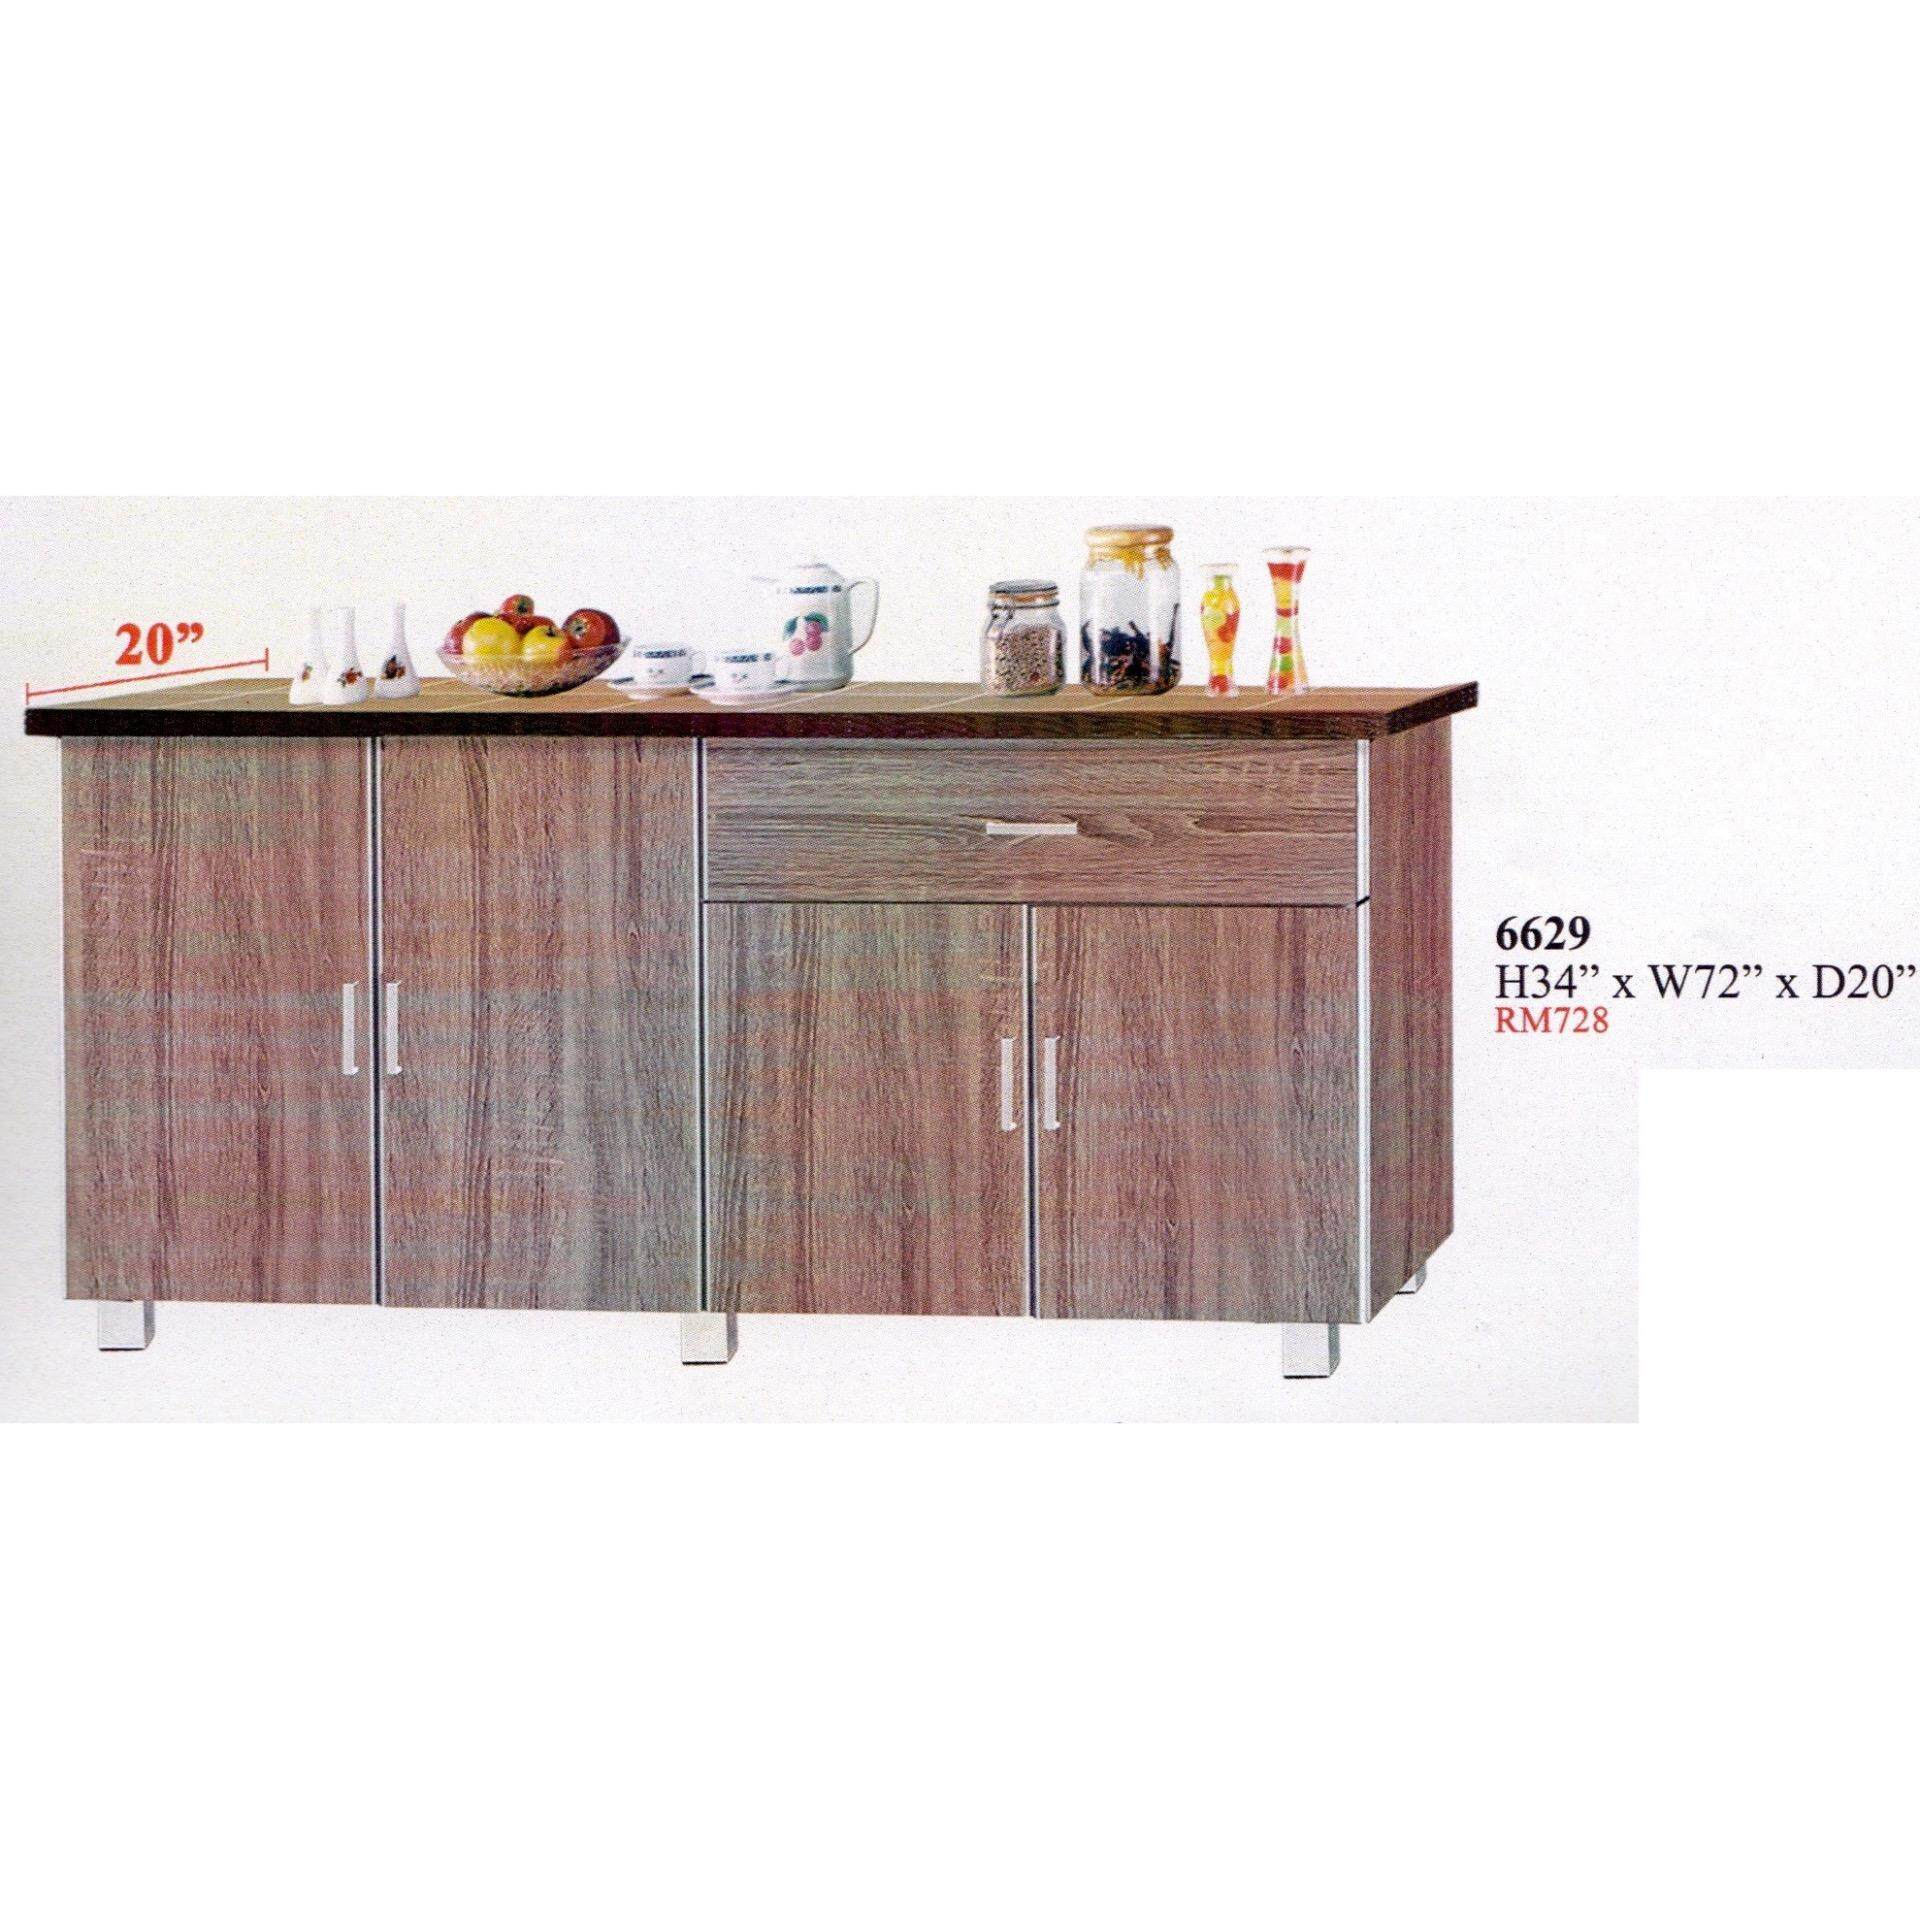 Ready-Fixed 6 Feet Kitchen Cabinet With Mosaic Top 6629 L1828MM X W408MM X H864MM